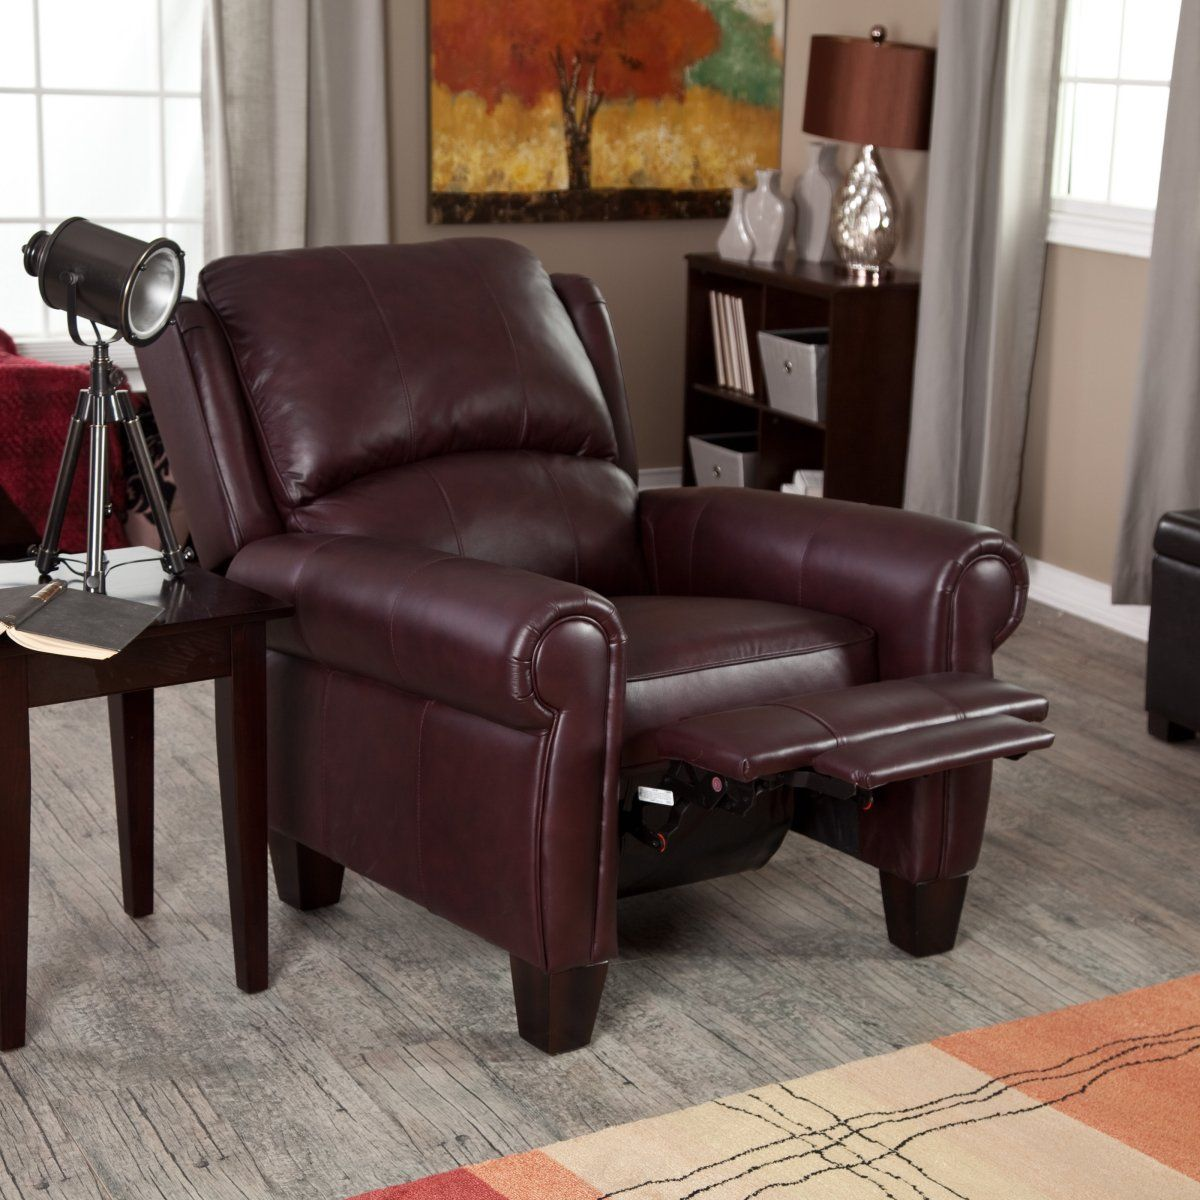 Barcalounger Charleston Recliner Interior Design Style Ideas Rh Pinterest Com